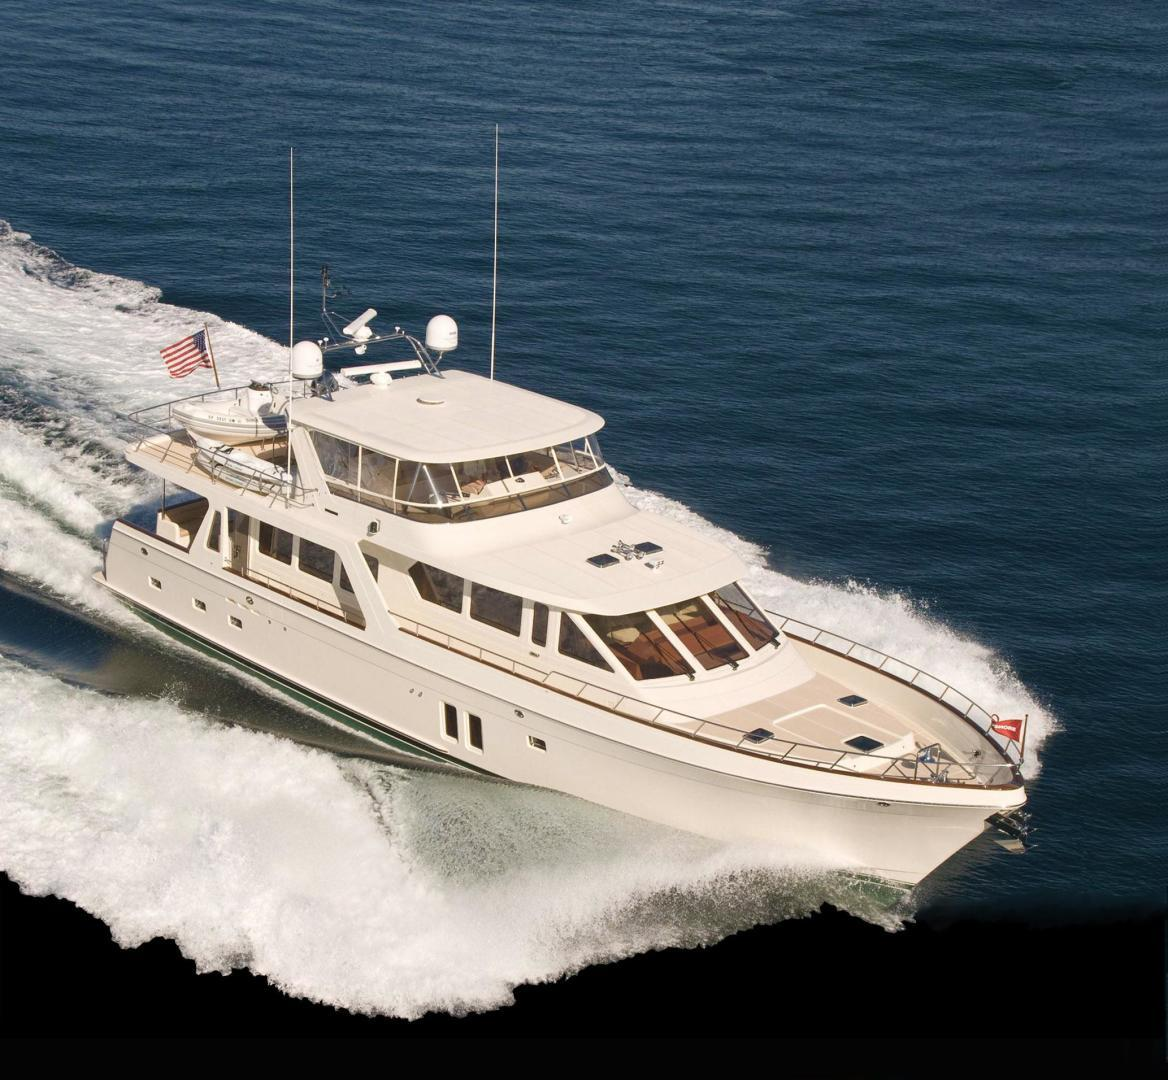 76' Offshore Yachts 76/80 Motoryacht